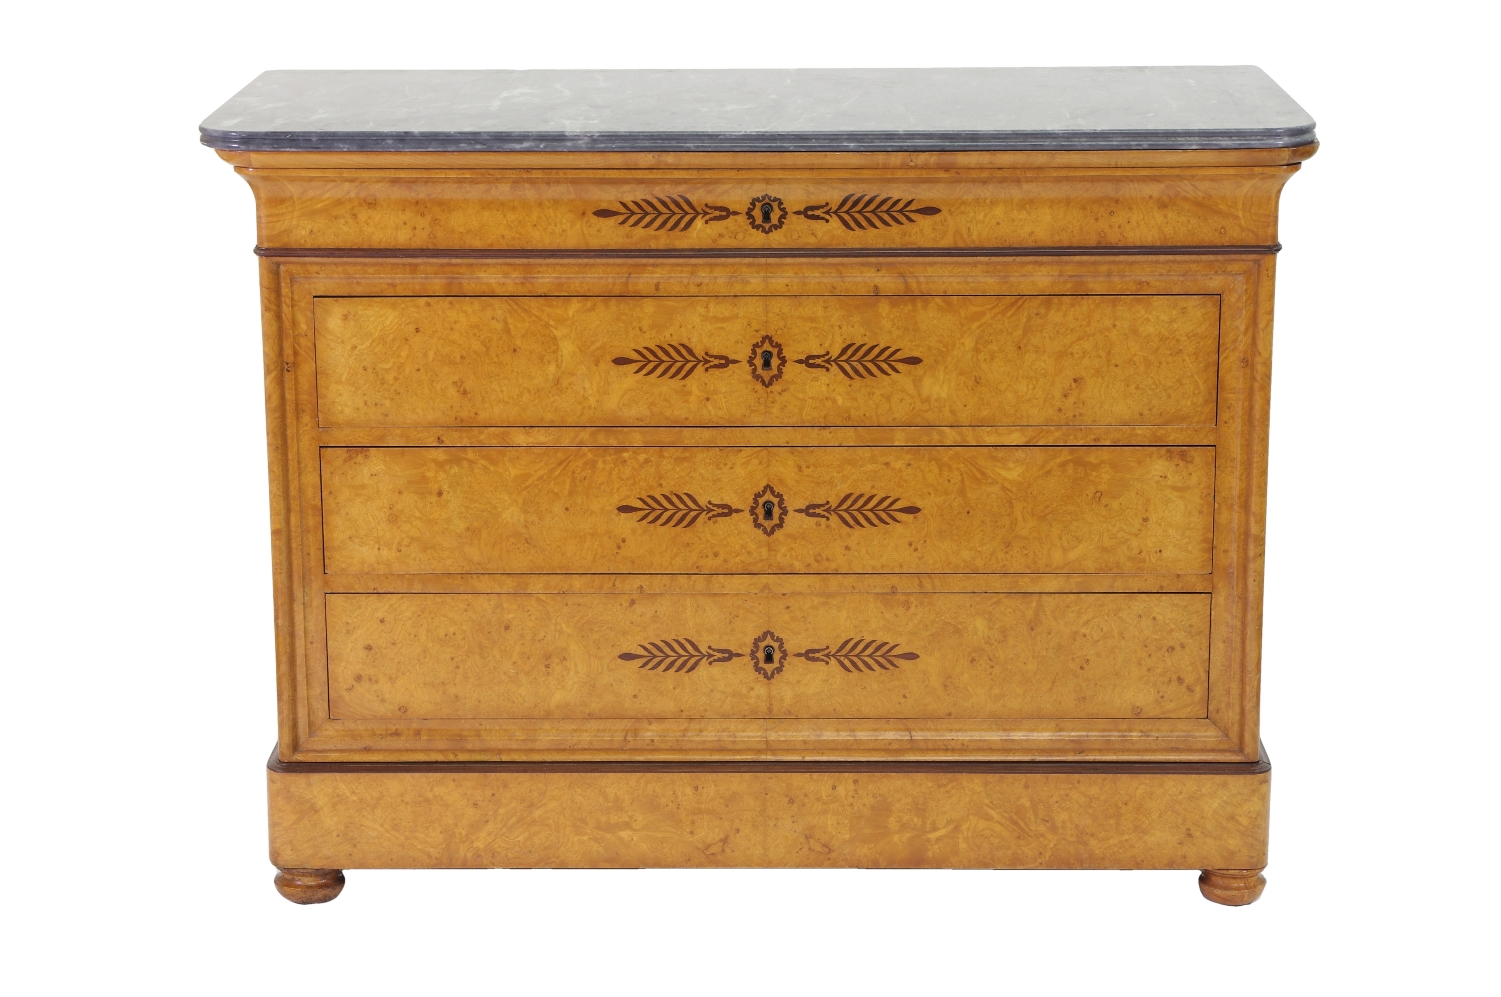 French Restauration Burr Ash Chest of Drawers, c. 1825